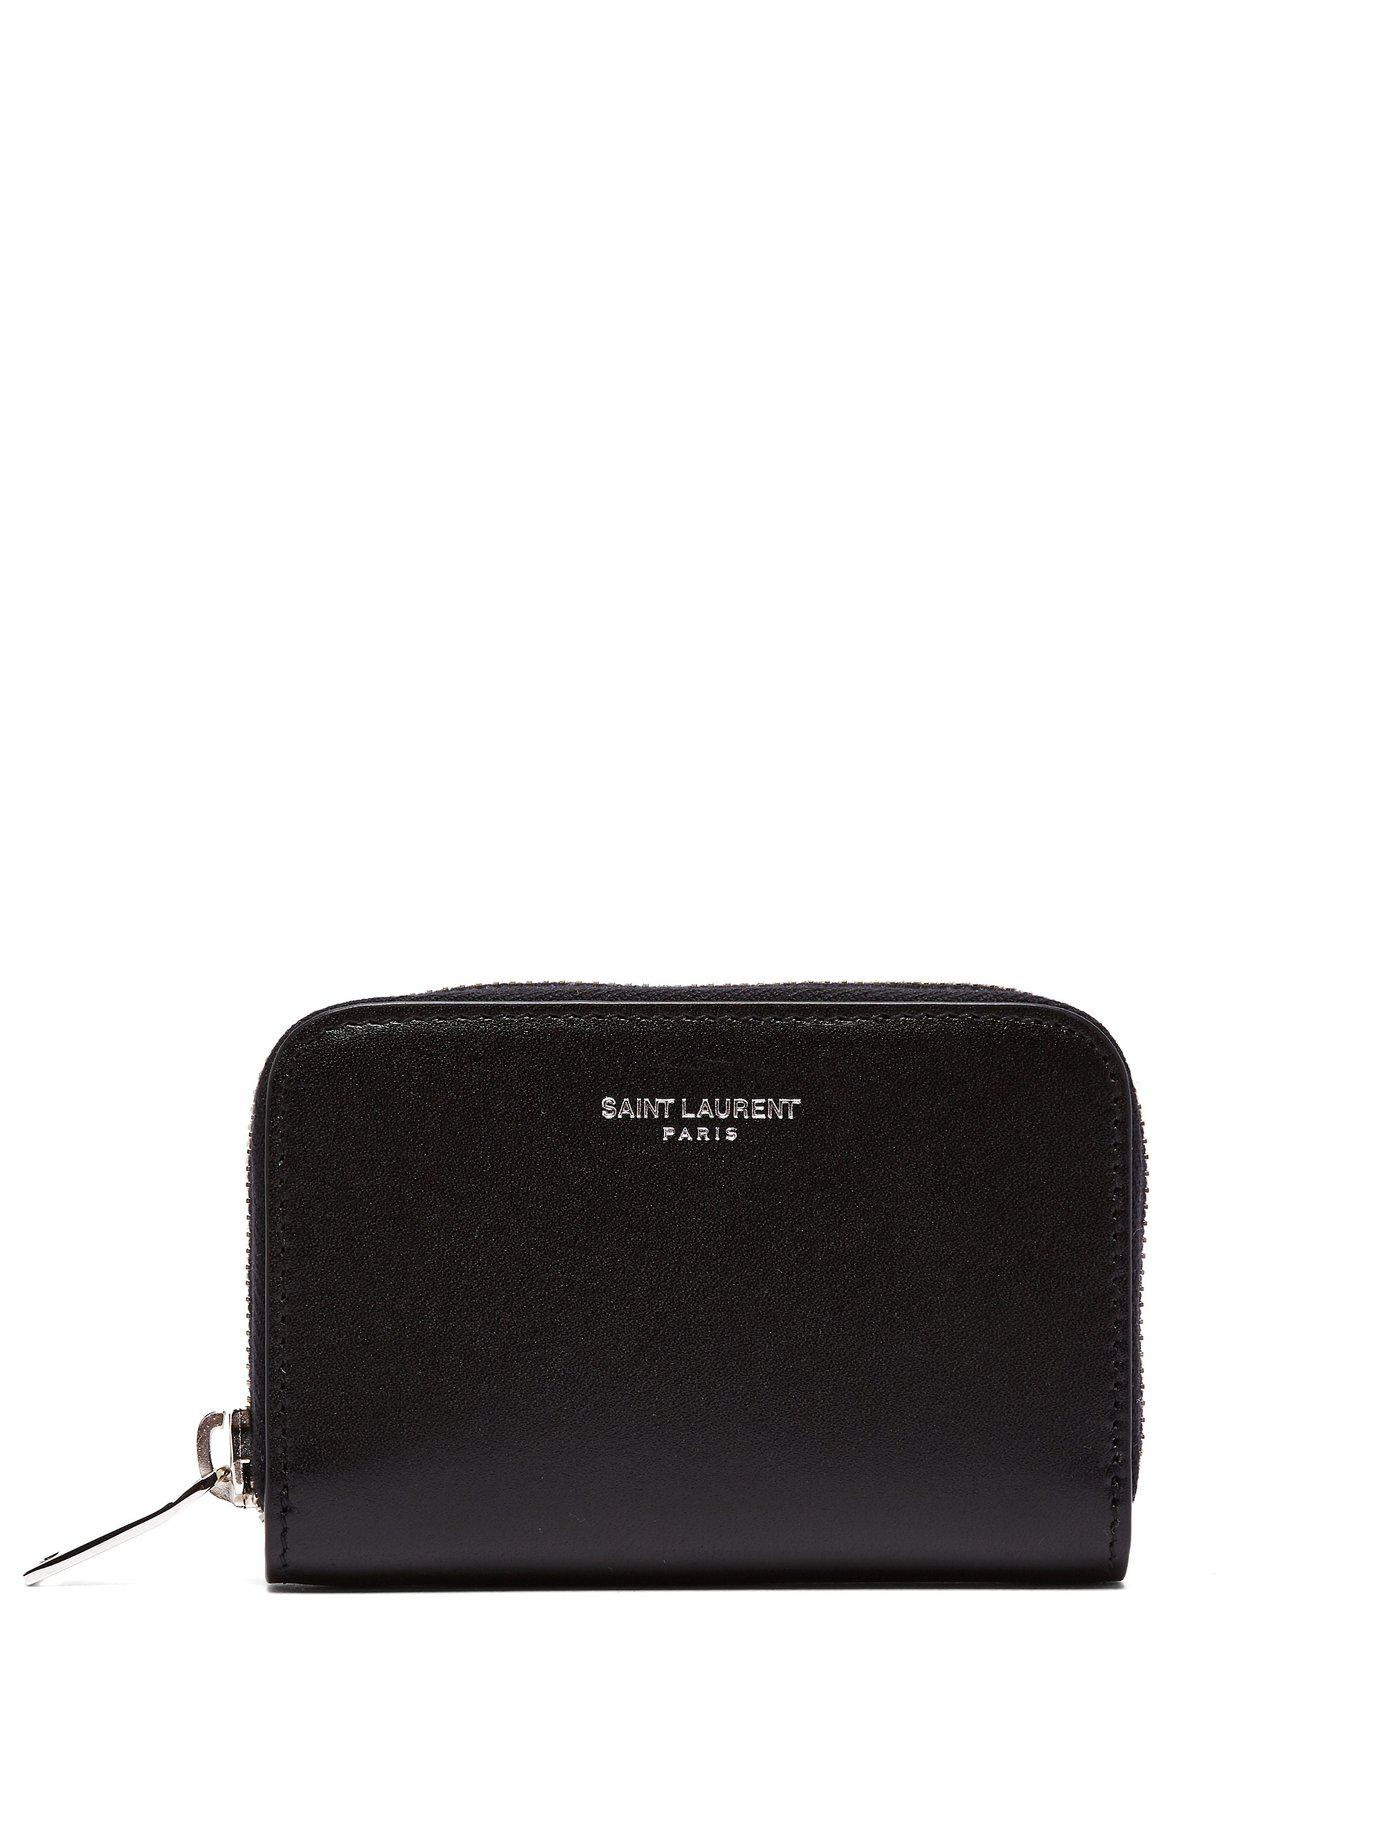 fcf7fe5e85d Lyst - Saint Laurent Logo Leather Coin Purse in Black for Men